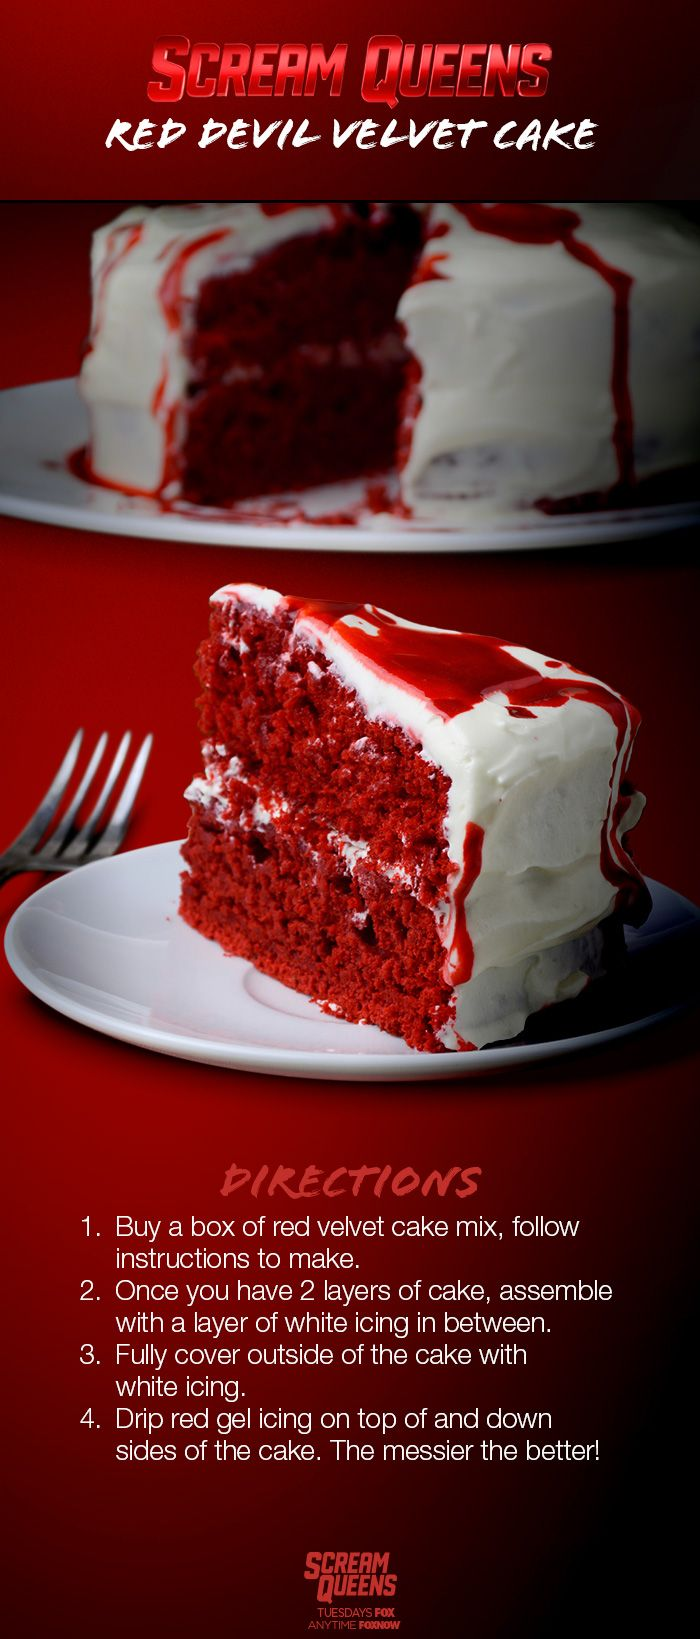 Nothing could be more bloody delicious than the Red Devil's Red Velvet cake! Try dripping red gel icing to recreate blood and complete your Halloween sweet treat!